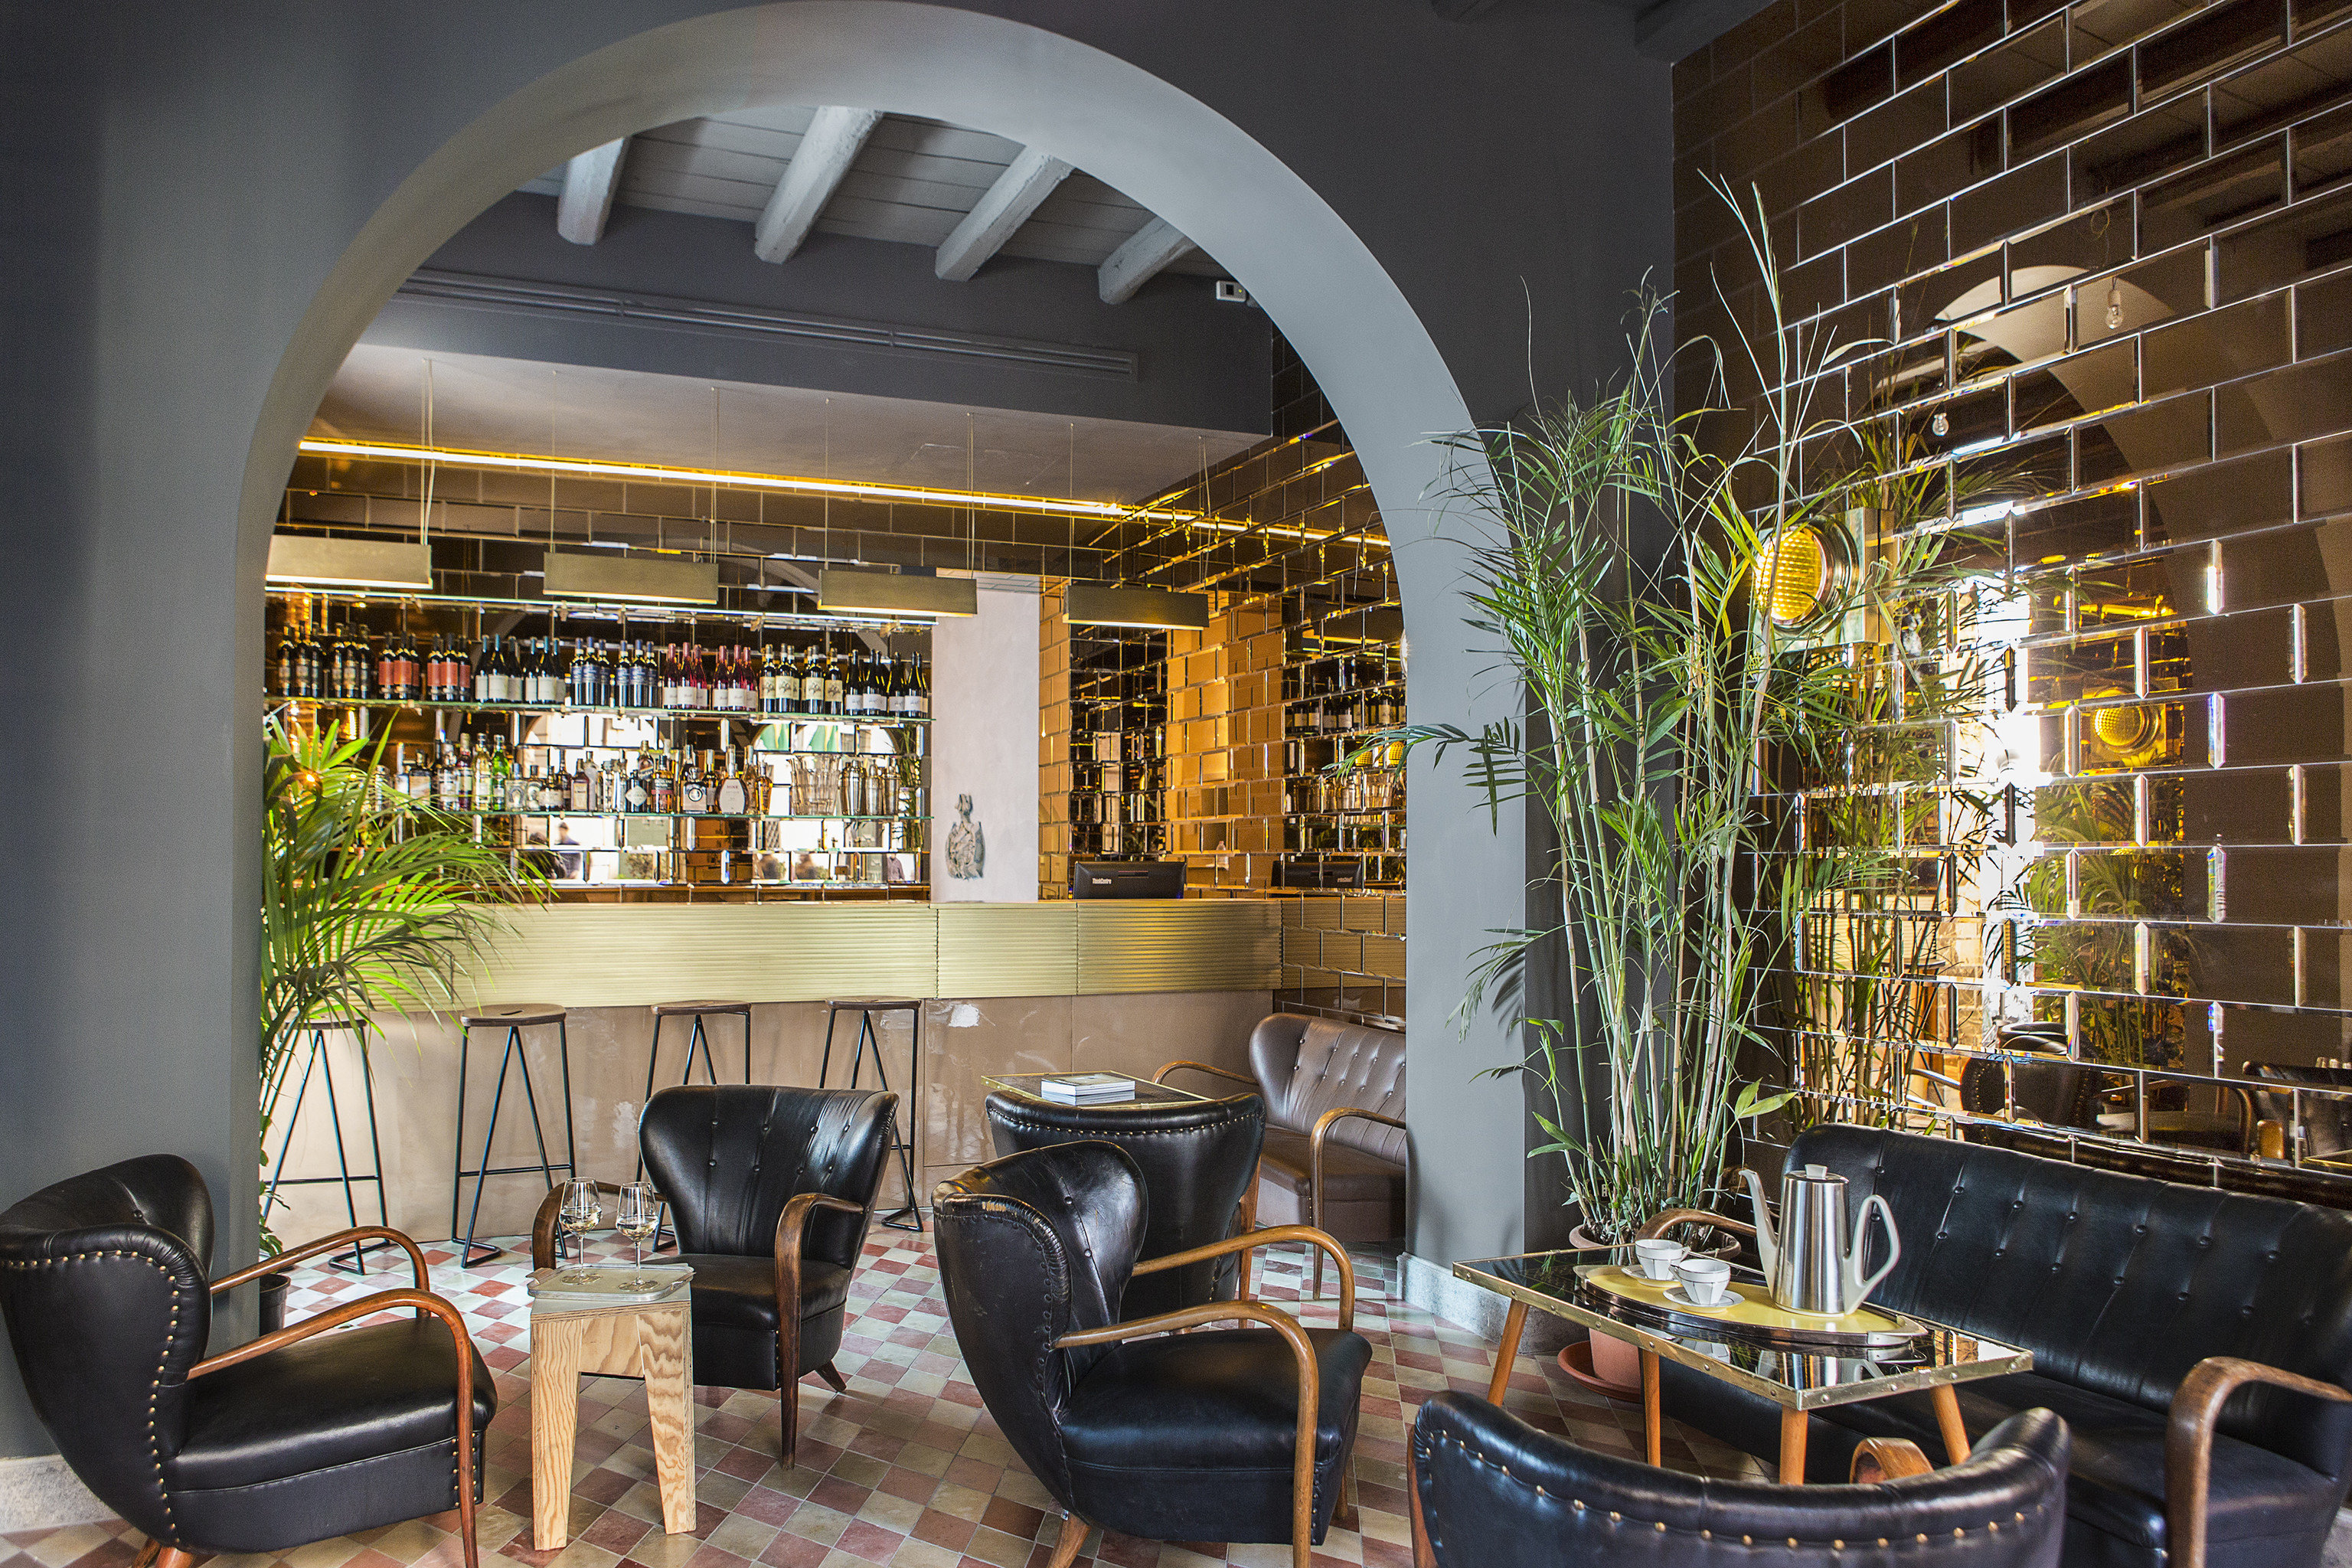 Boutique Hotels Indoor Chair Room Lobby Estate Home Restaurant Interior Design Bar Living Real